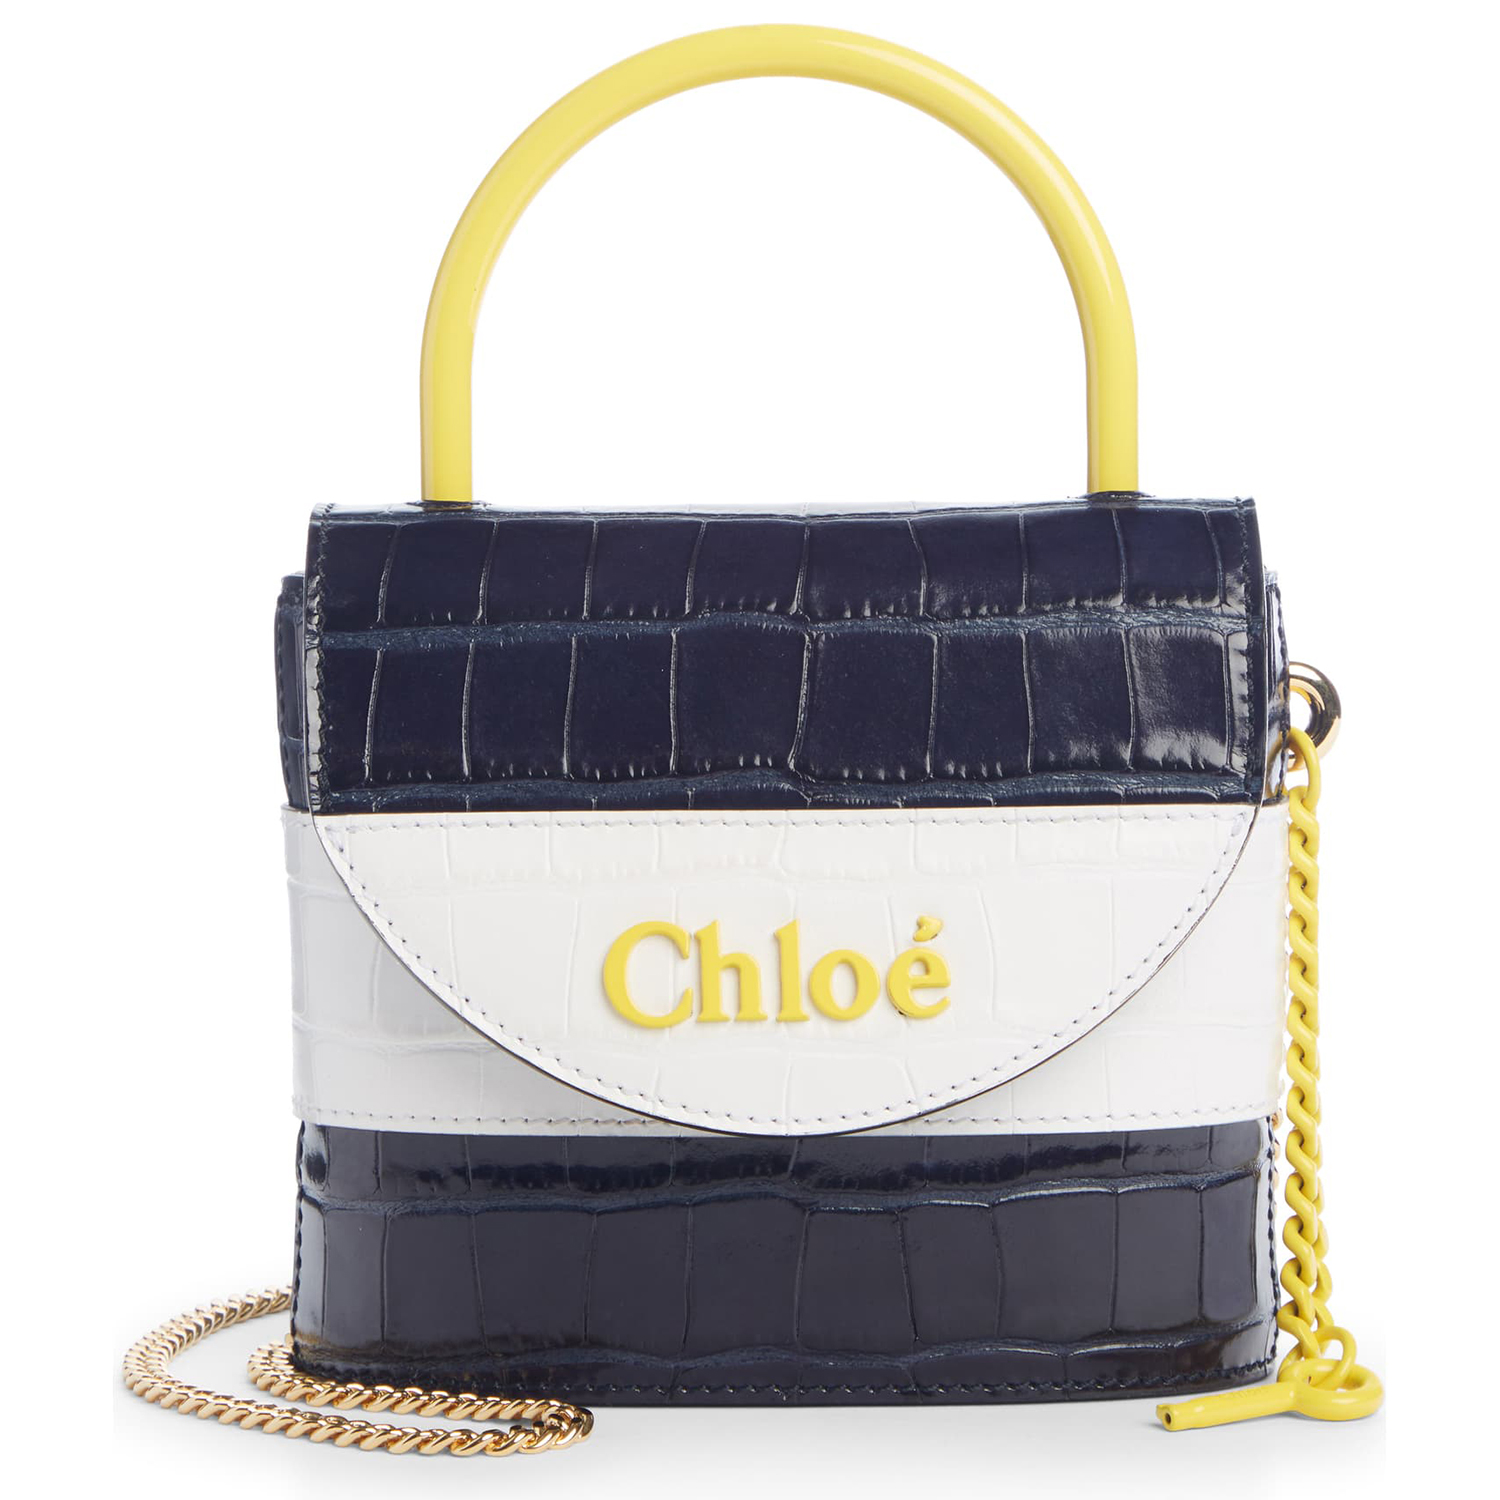 Chloé Small Aby Lock Croc Embossed Leather Shoulder Bag